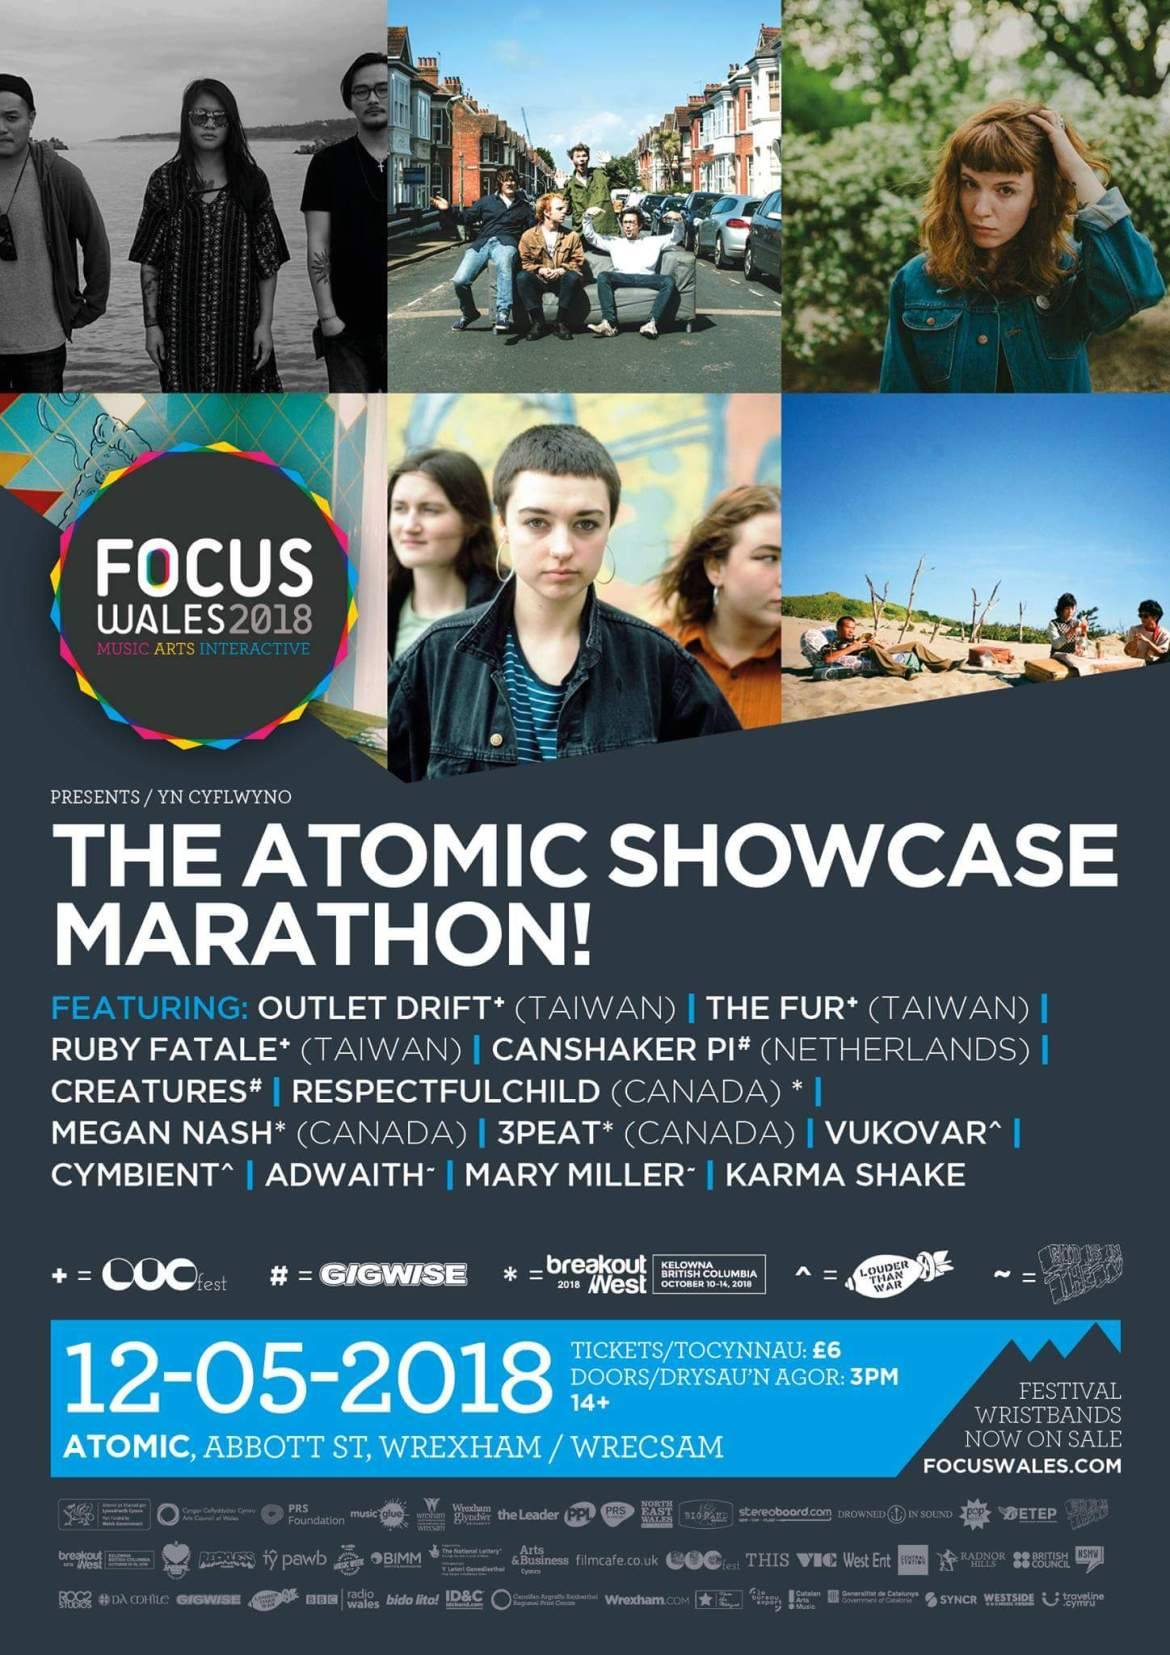 NEWS: Adwaith & Mary Miller our picks for The Atomic Showcase Marathon at FOCUS Wales